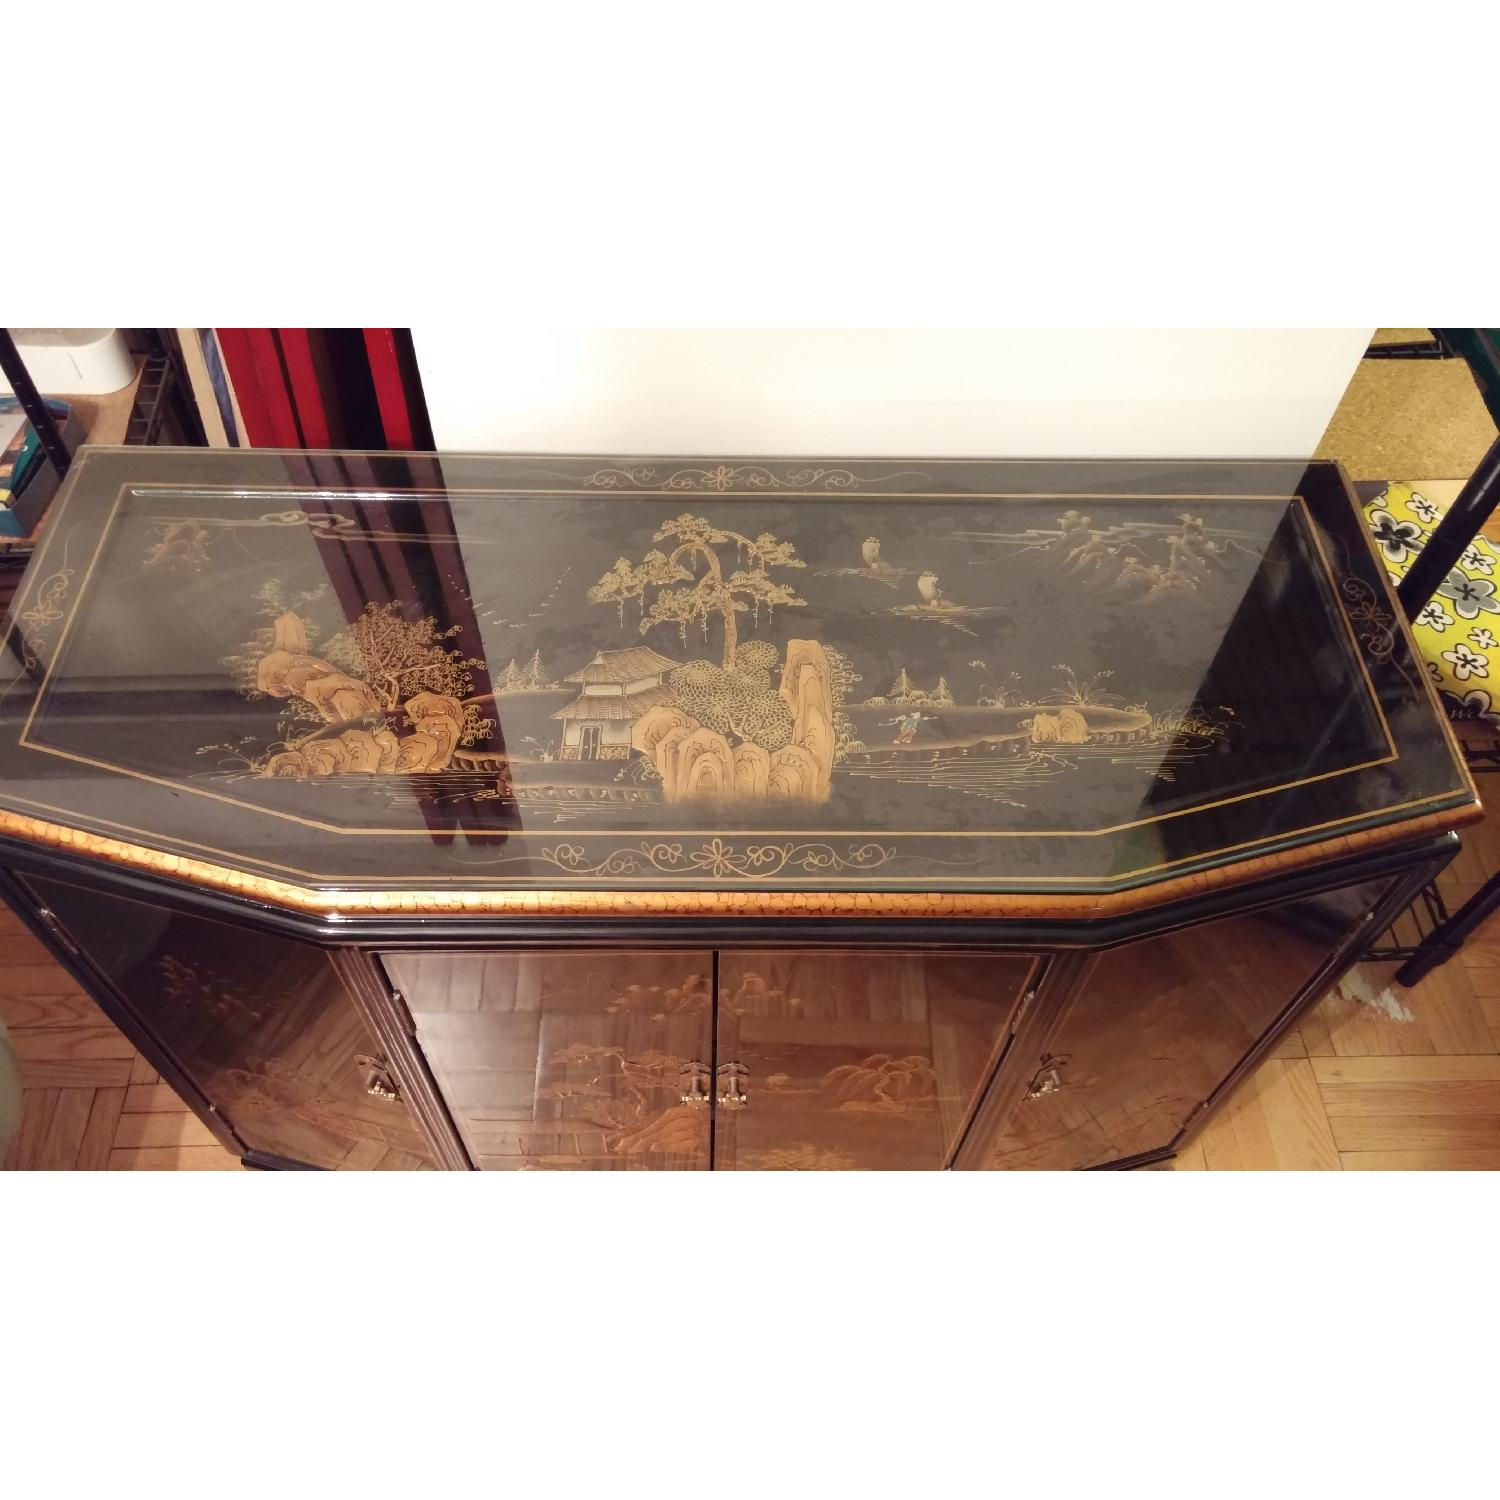 Vintage Chinese Lacquer Cabinet - image-2